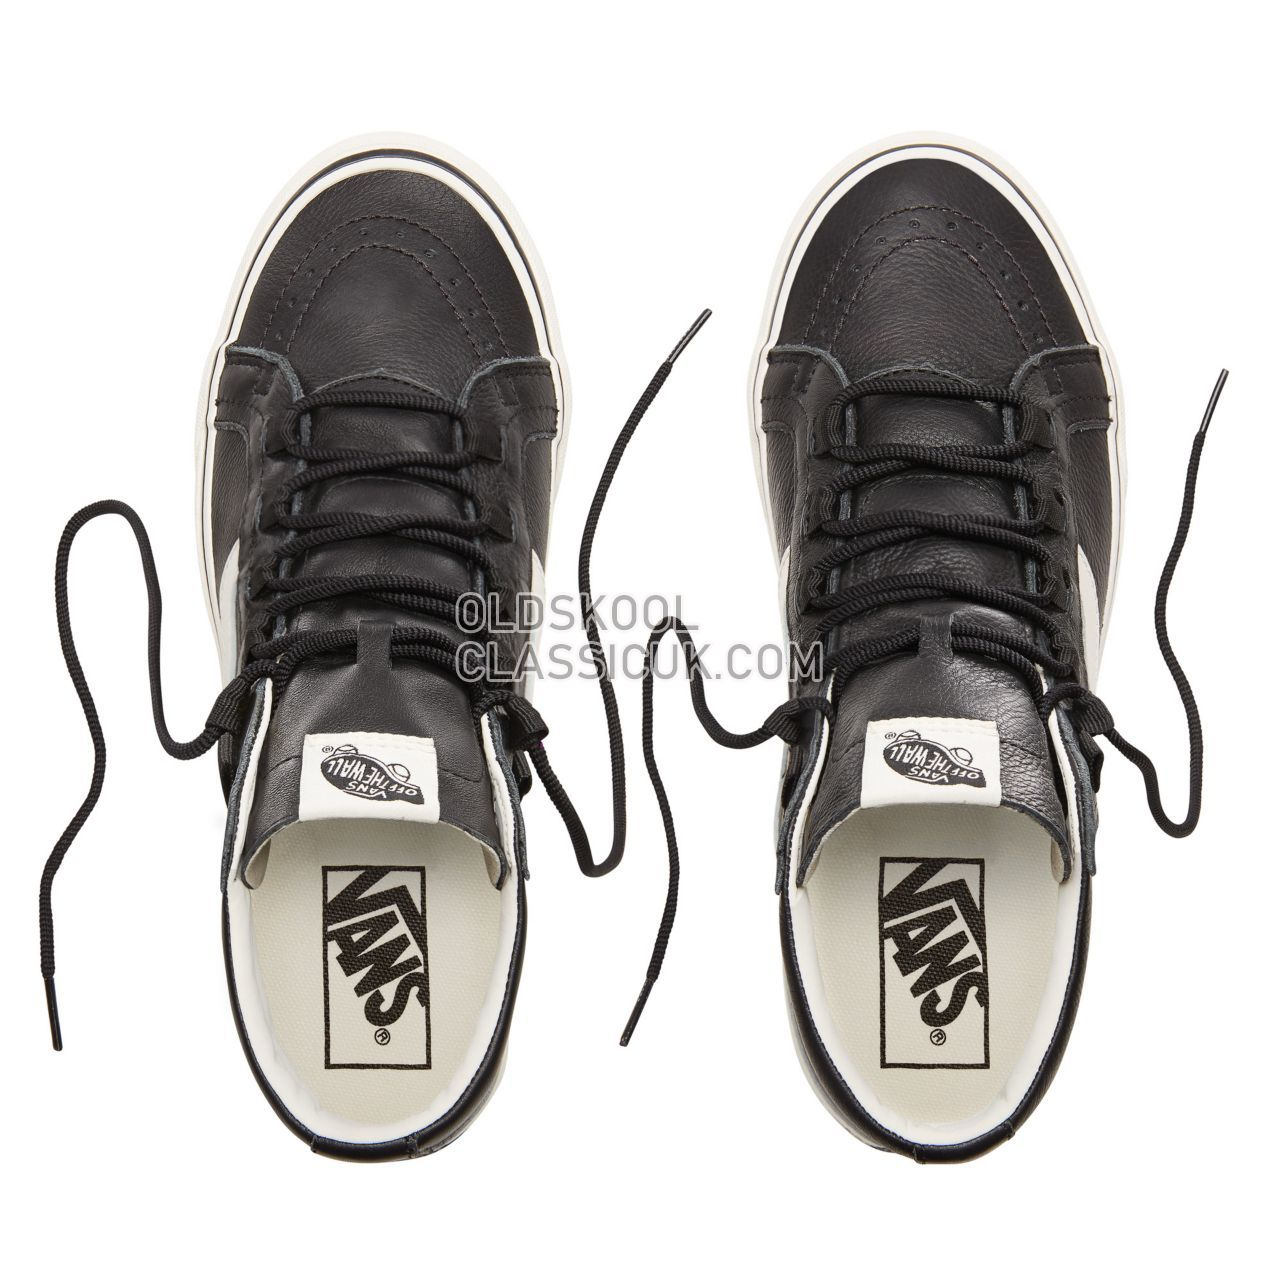 Vans Leather Sk8-Hi Reissue Ghillie Sneakers Mens (Leather) Black/Marshmallow VN0A3ZCH68X Shoes